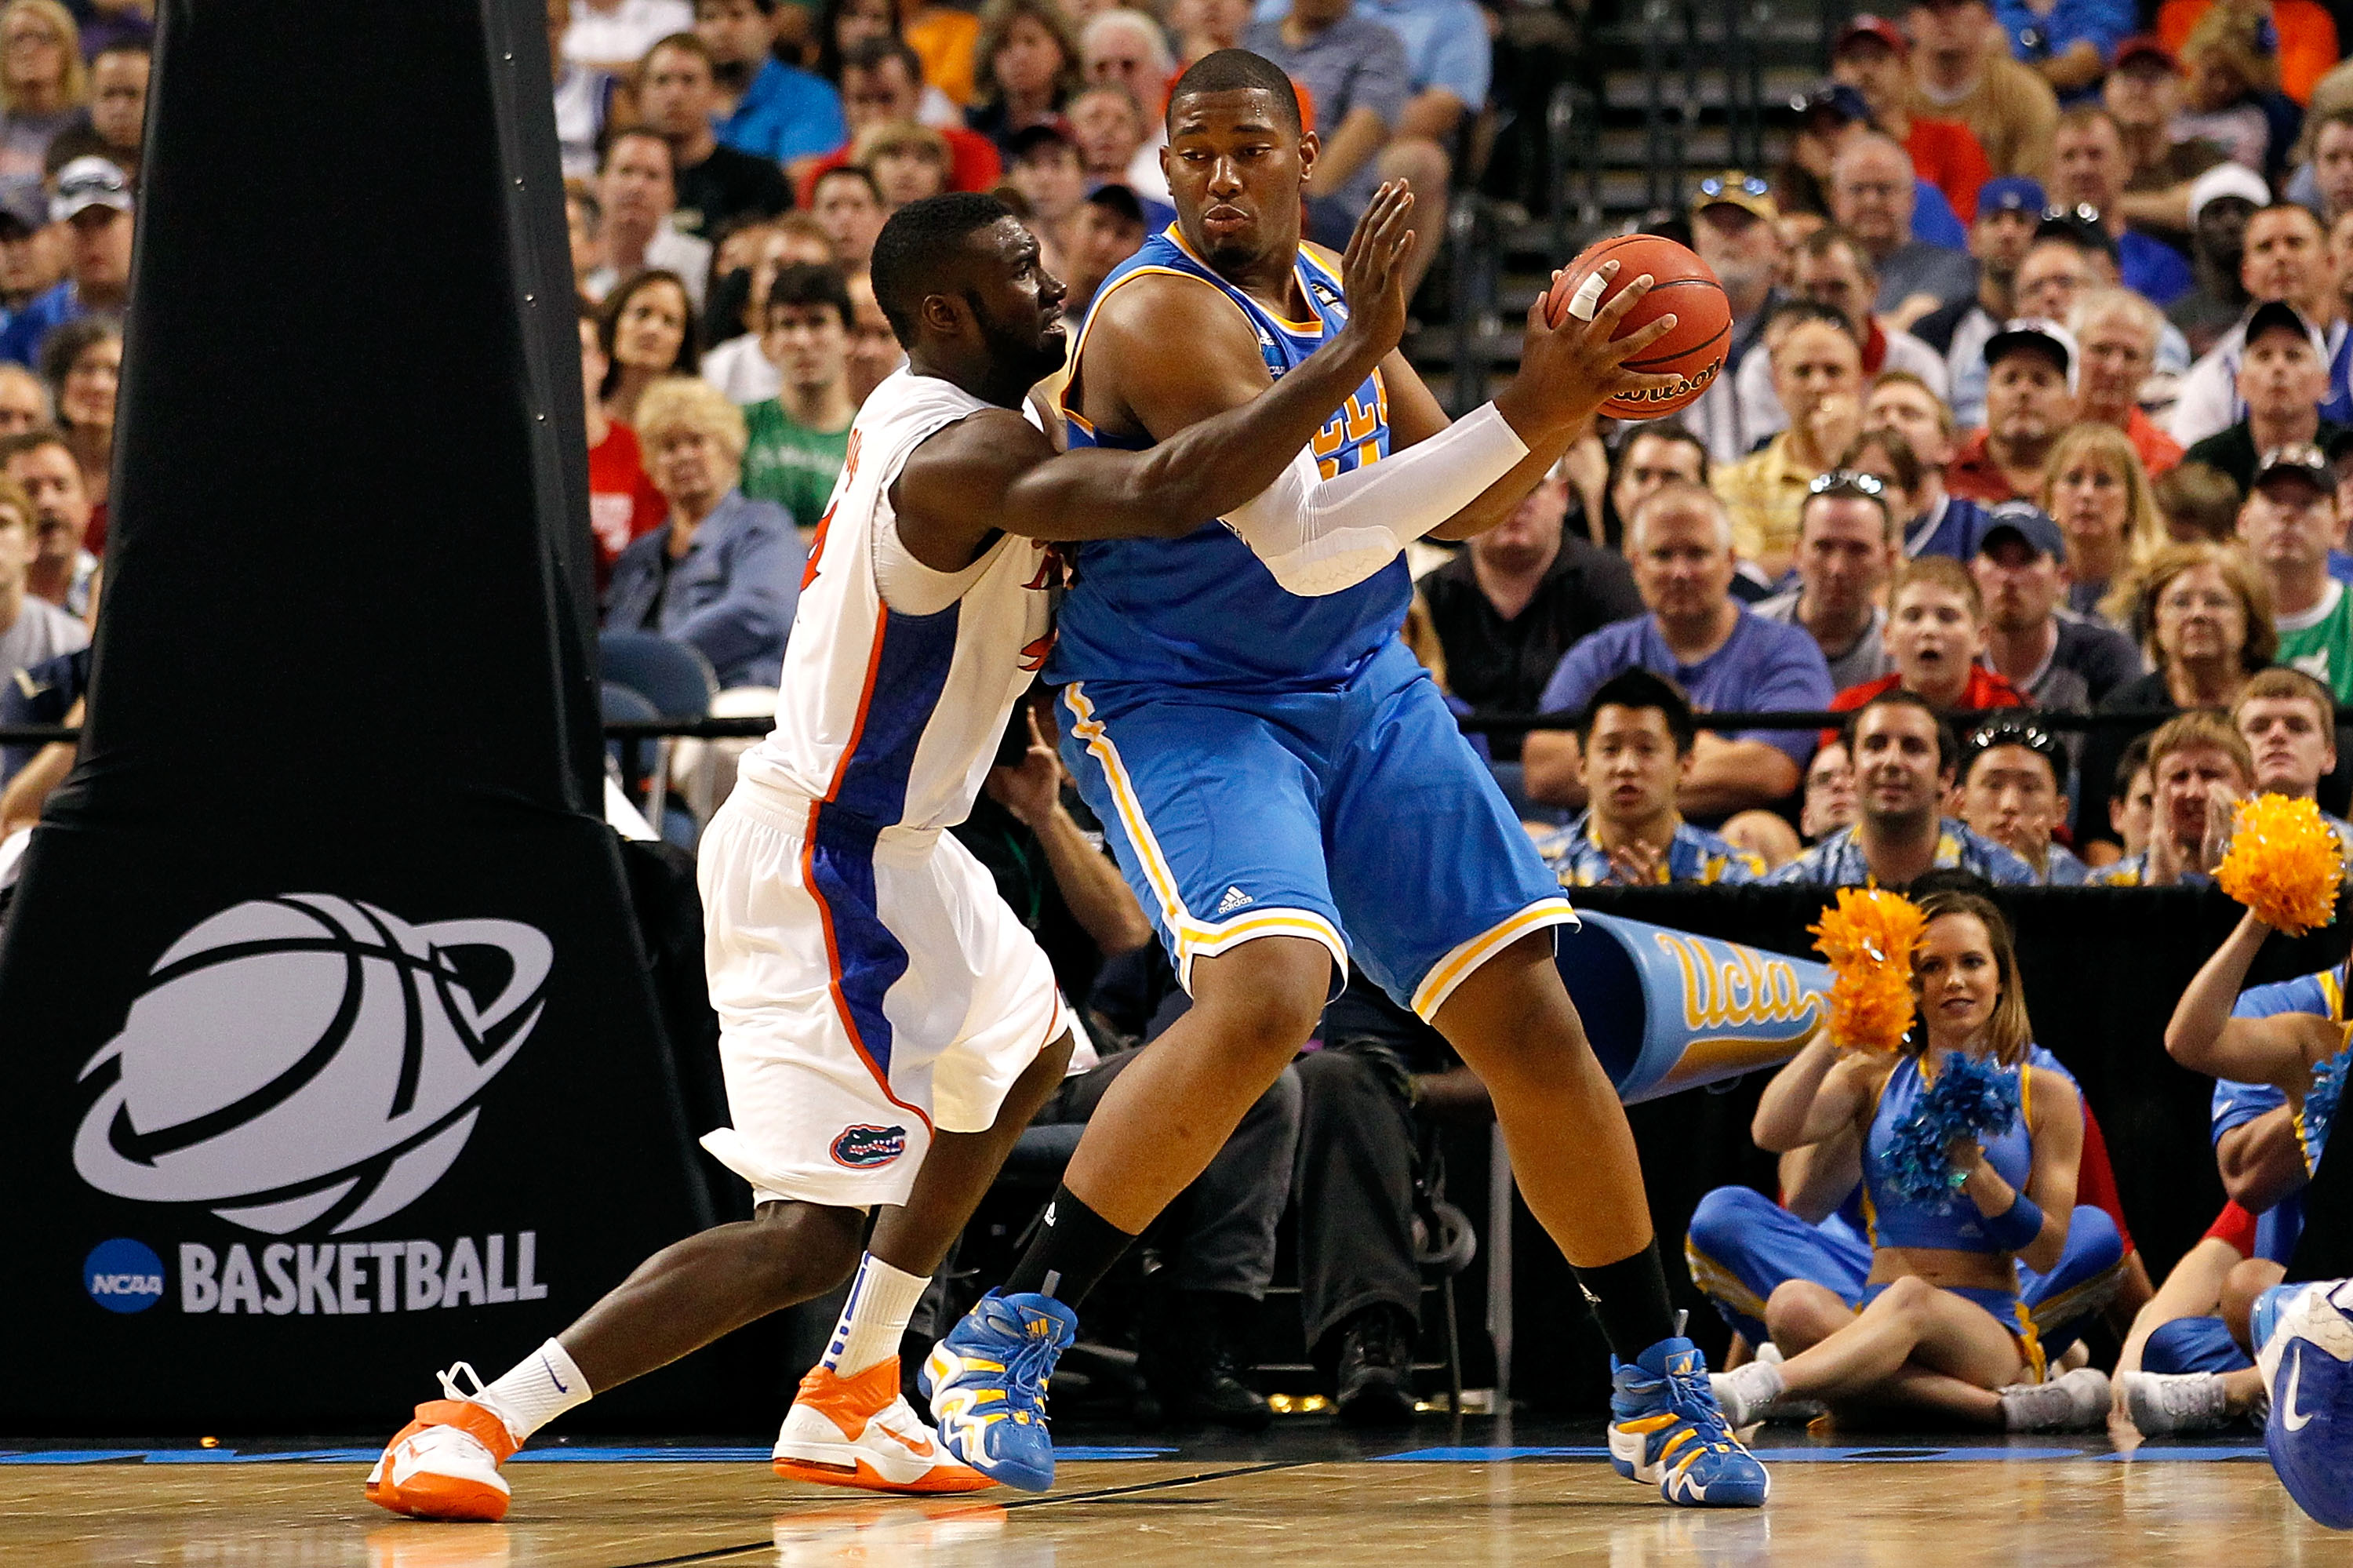 TAMPA, FL - MARCH 19:  Joshua Smith #34 of the UCLA Bruins posts up against Patric Young #4 of the Florida Gators during the third round of the 2011 NCAA men's basketball tournament at St. Pete Times Forum on March 19, 2011 in Tampa, Florida. Florida won